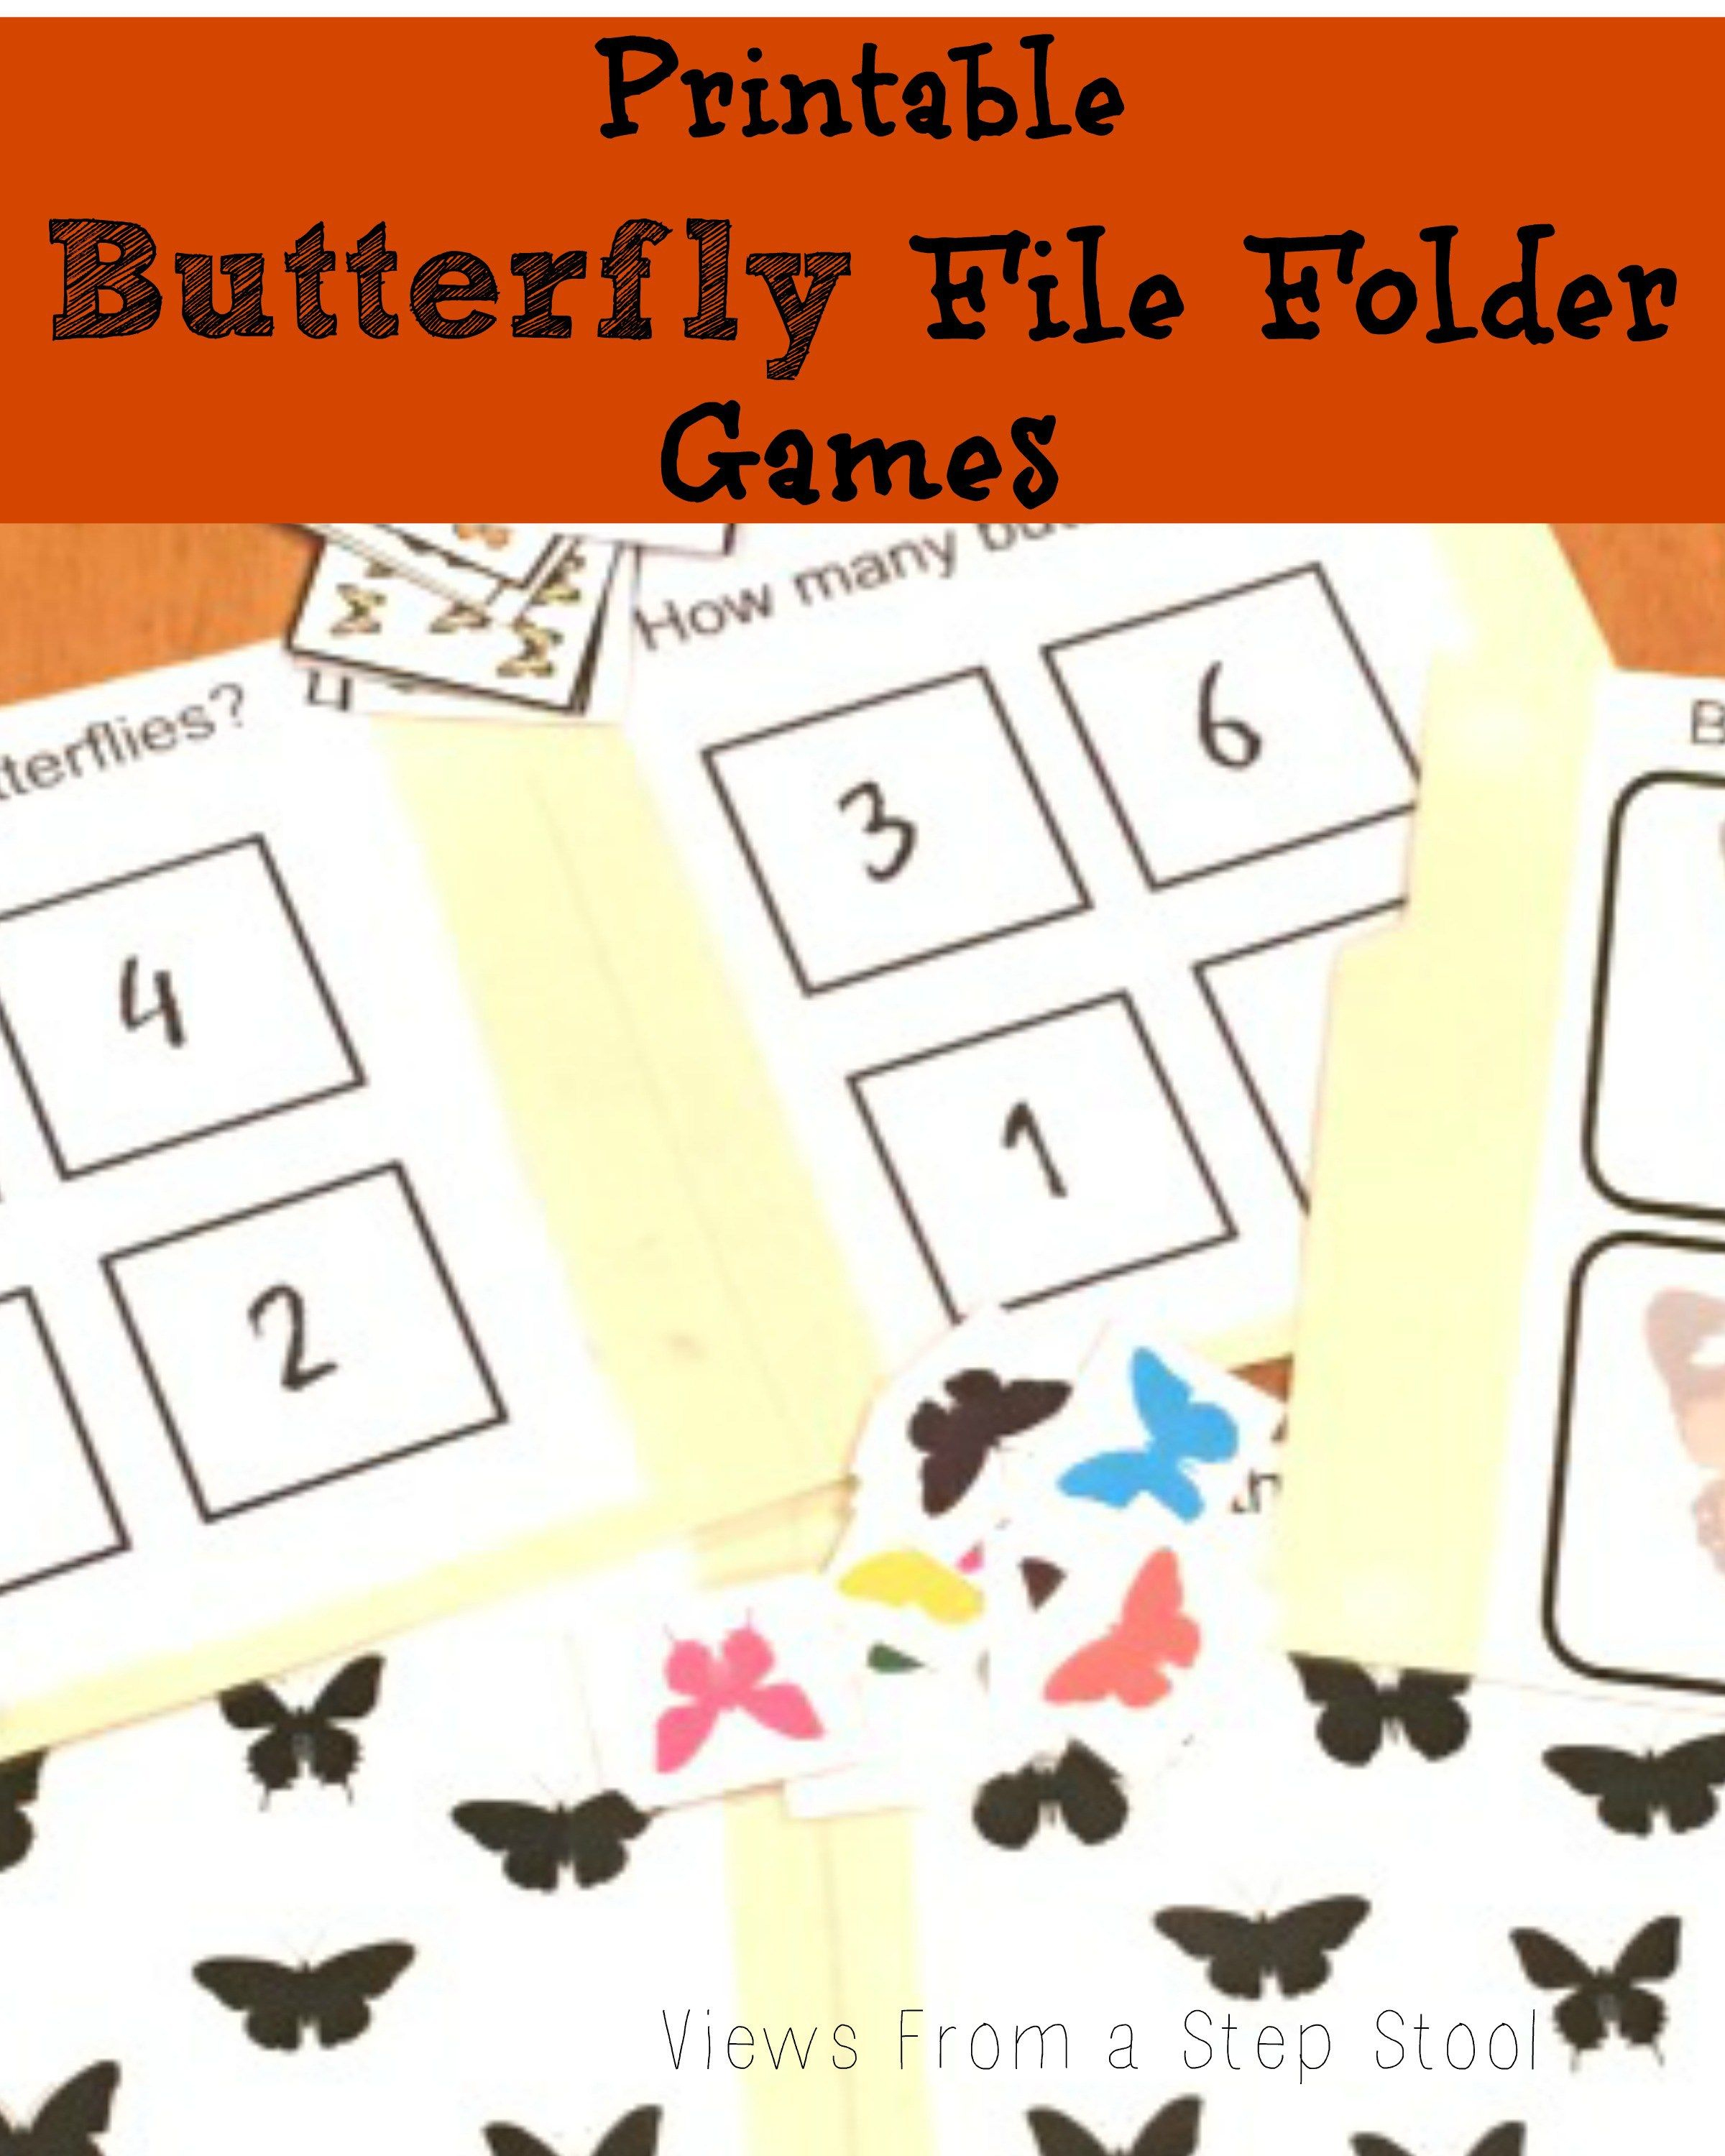 Butterfly File Folder Games: Free Printable! | Views From A Step - Free Printable File Folder Games